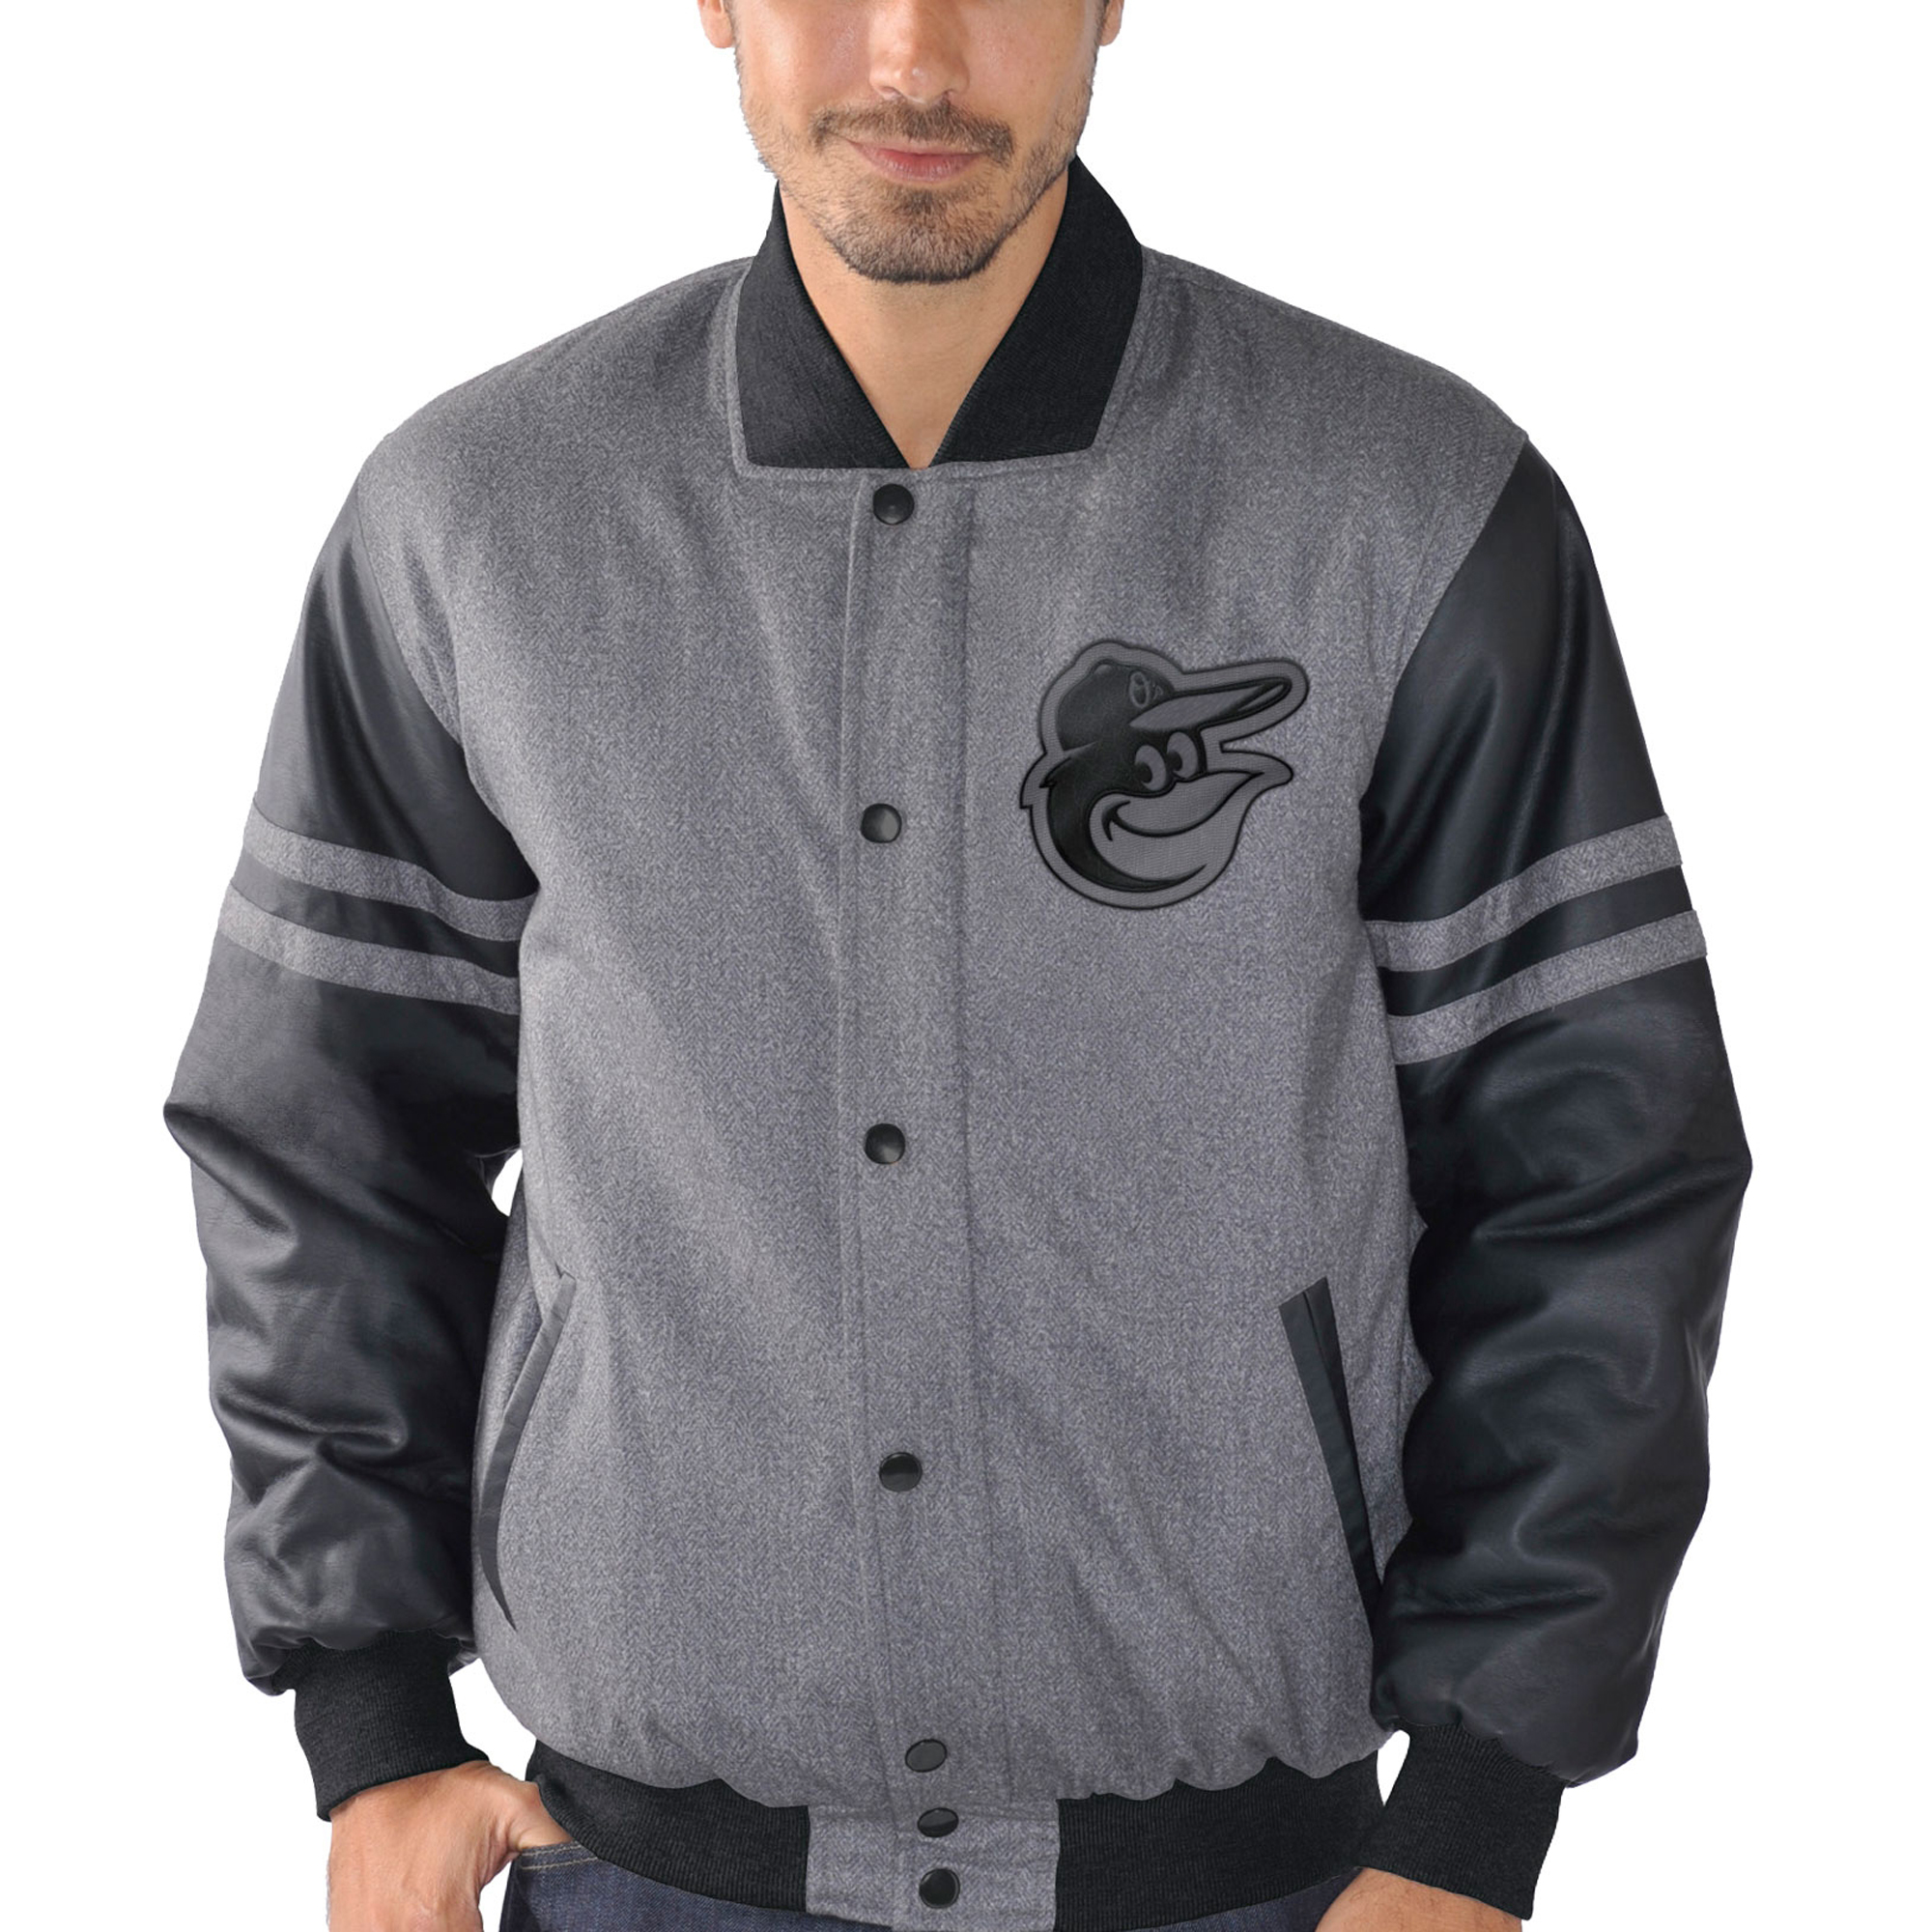 Baltimore Orioles G-III Sports by Carl Banks Post Game Varsity Jacket - Charcoal/Black